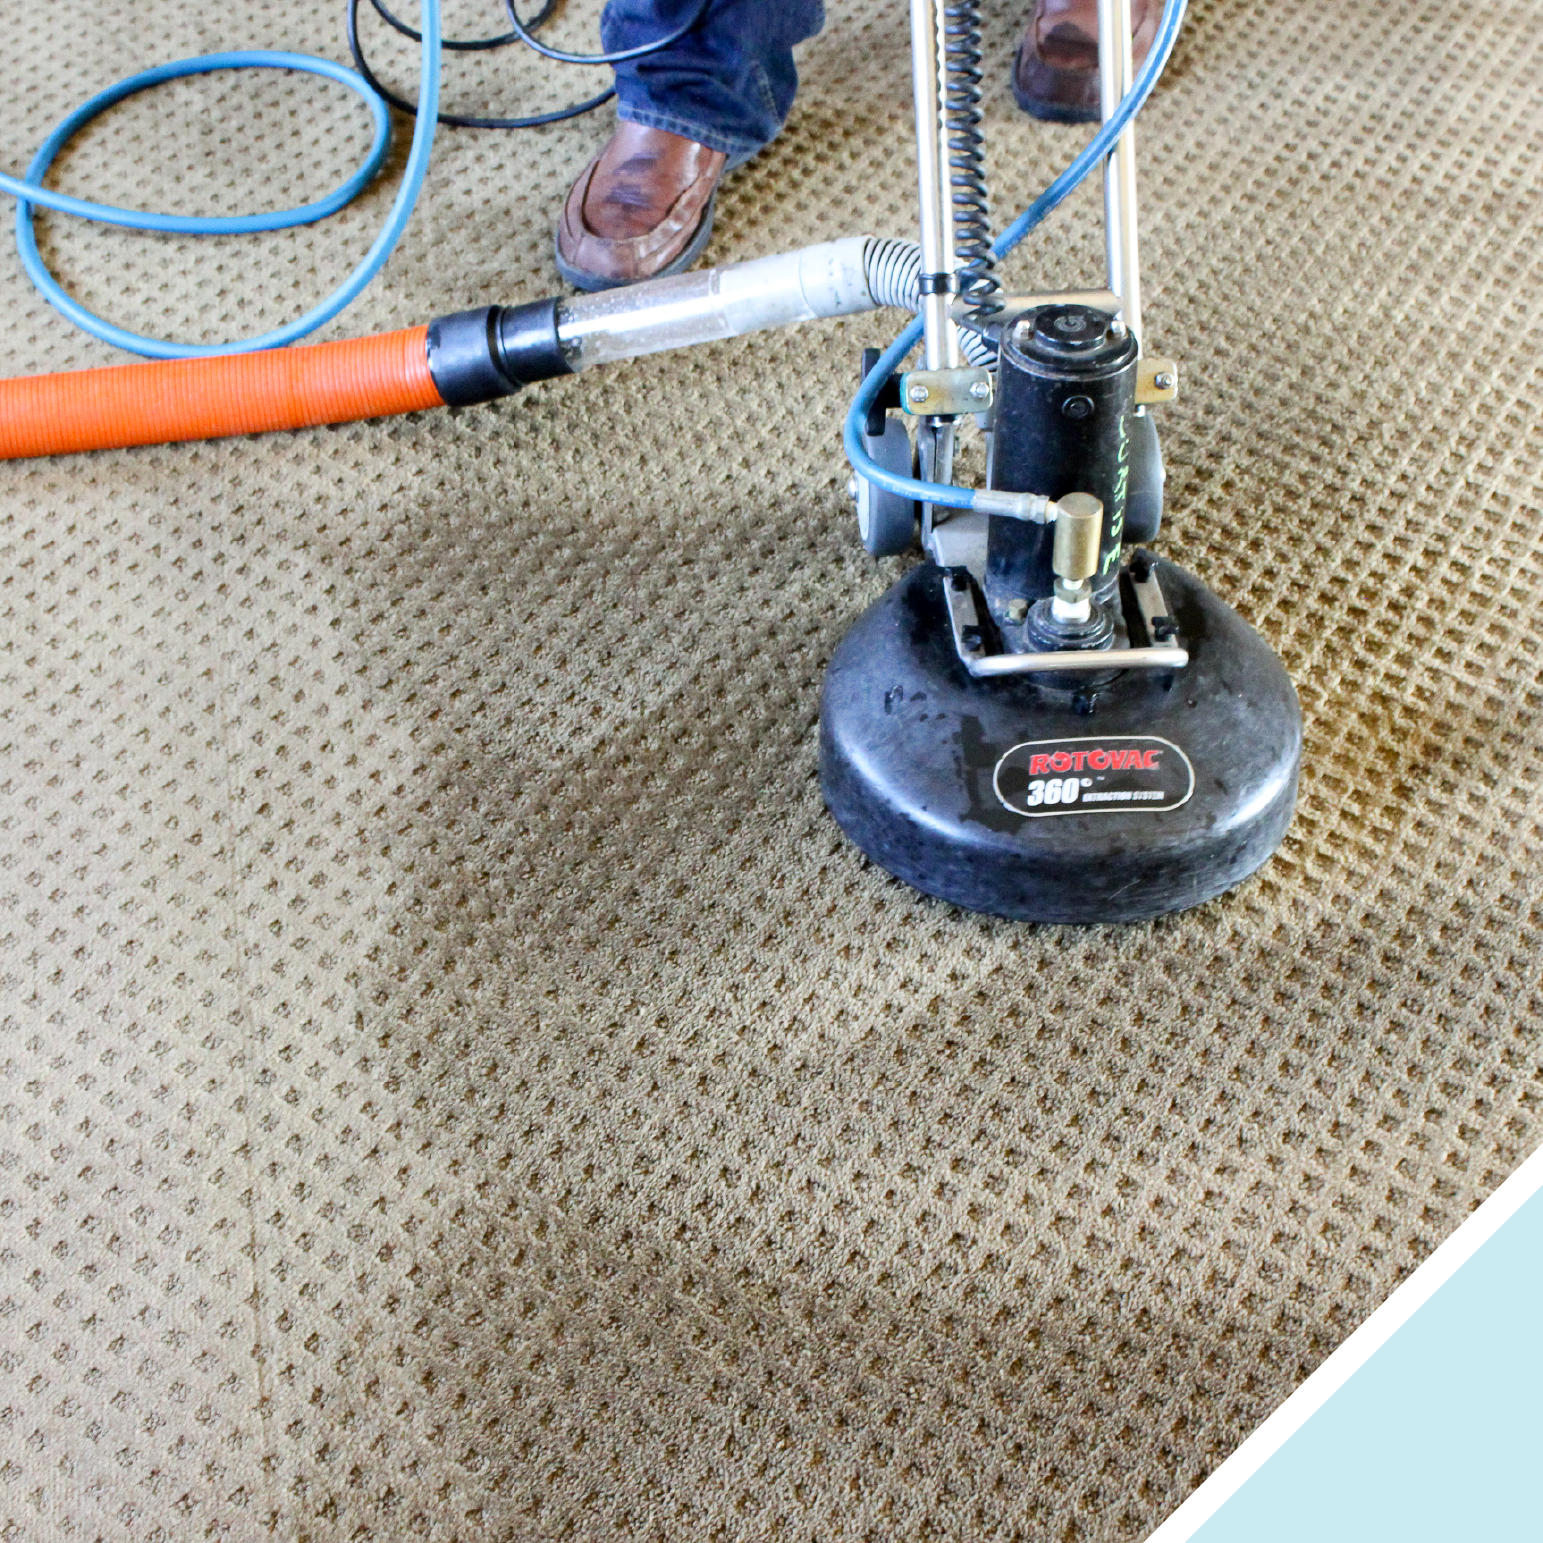 Rotary Extraction cleans much deeper than traditional wand cleaning. We recommend using this method on high traffic areas like hallways.